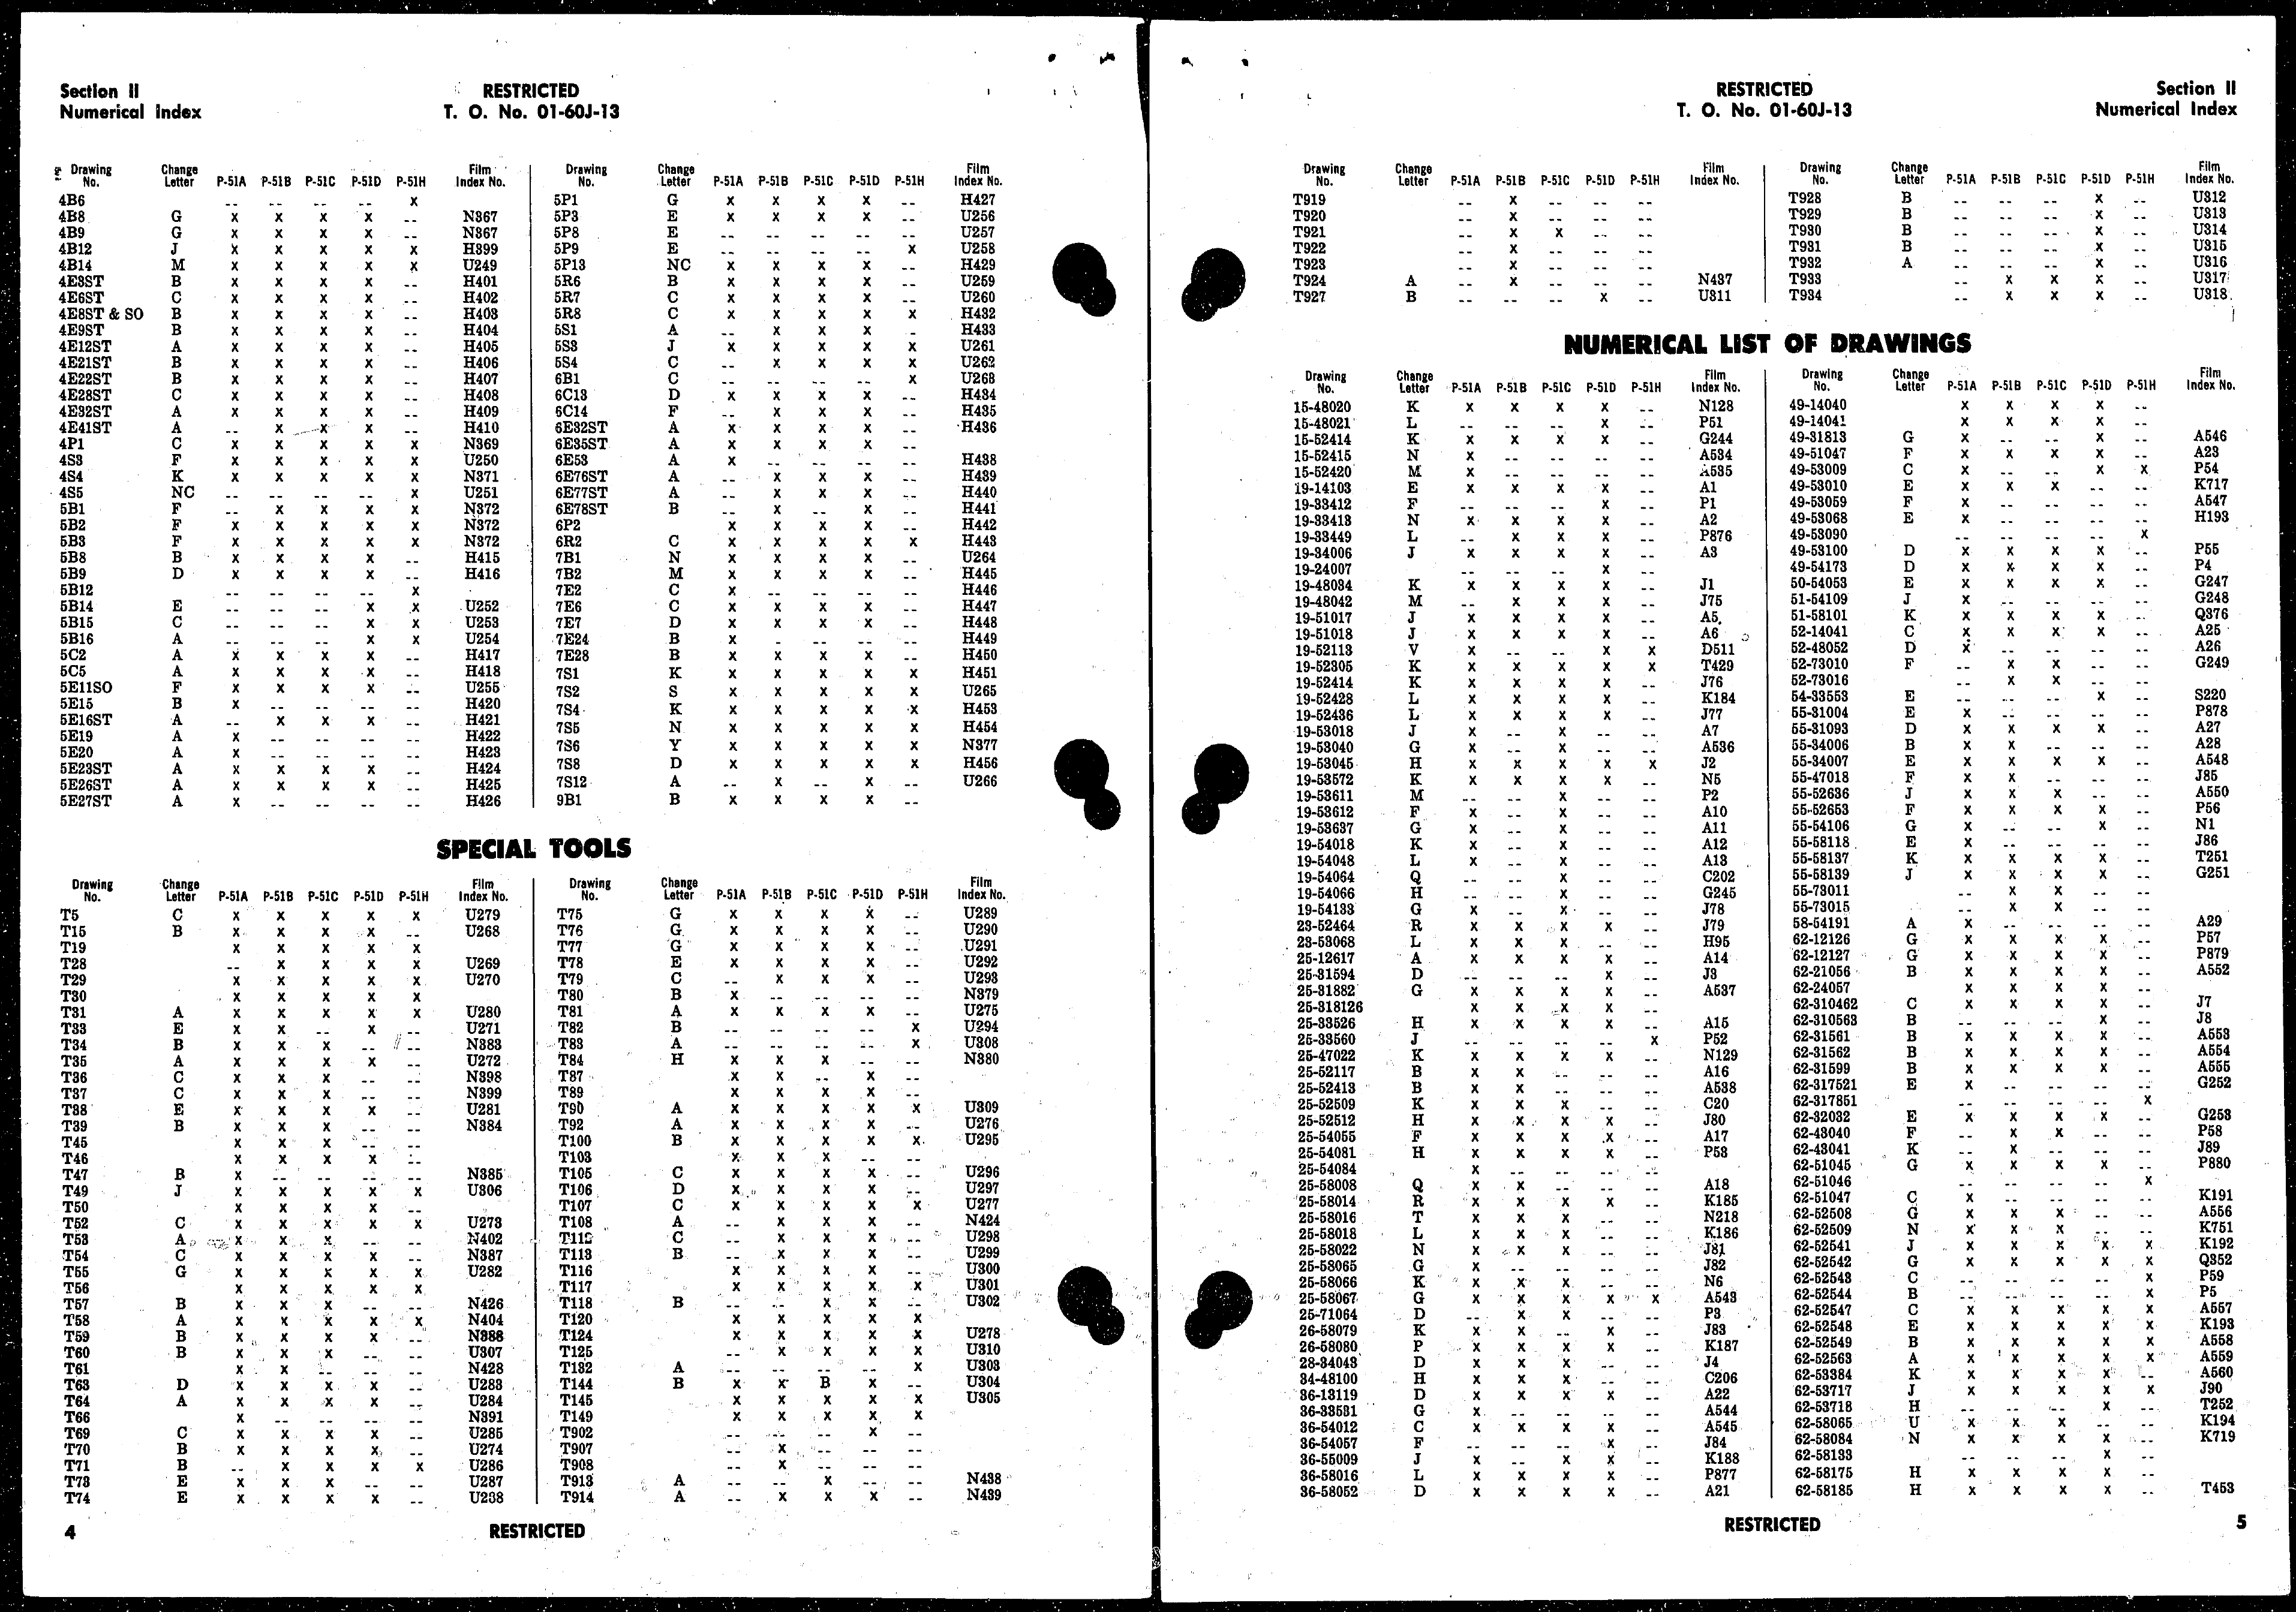 Sample page 4 from AirCorps Library document: Index of Drawings on Microfilm for Model P-51 Series Aircraft